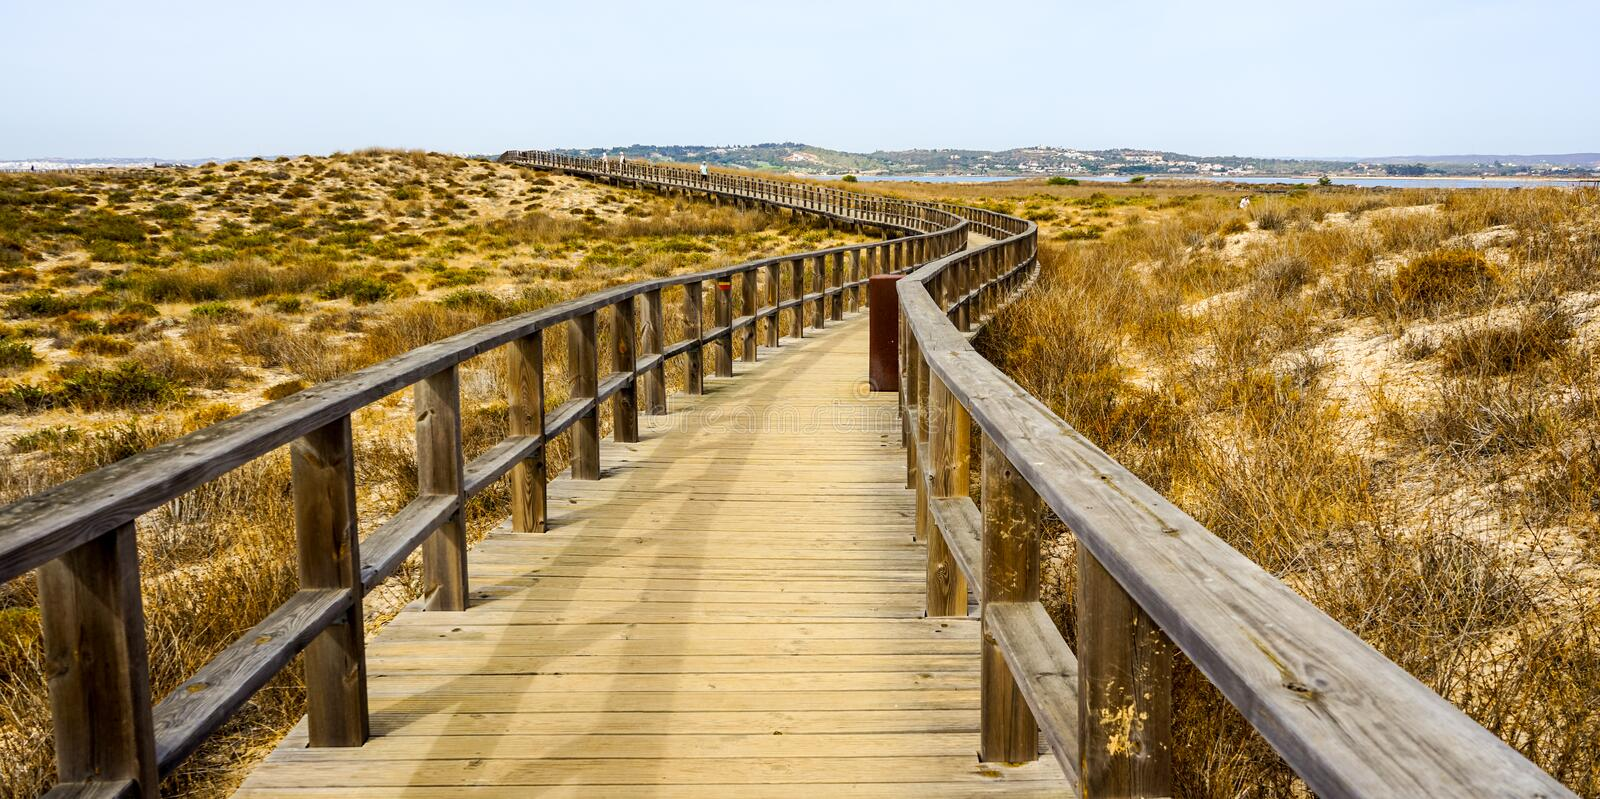 Perfect for birdwatching near Lagos. Algarve area is well known in Portugal for sunny days, long sand beaches, turquoise water and caves. Perfect in October to stock photo